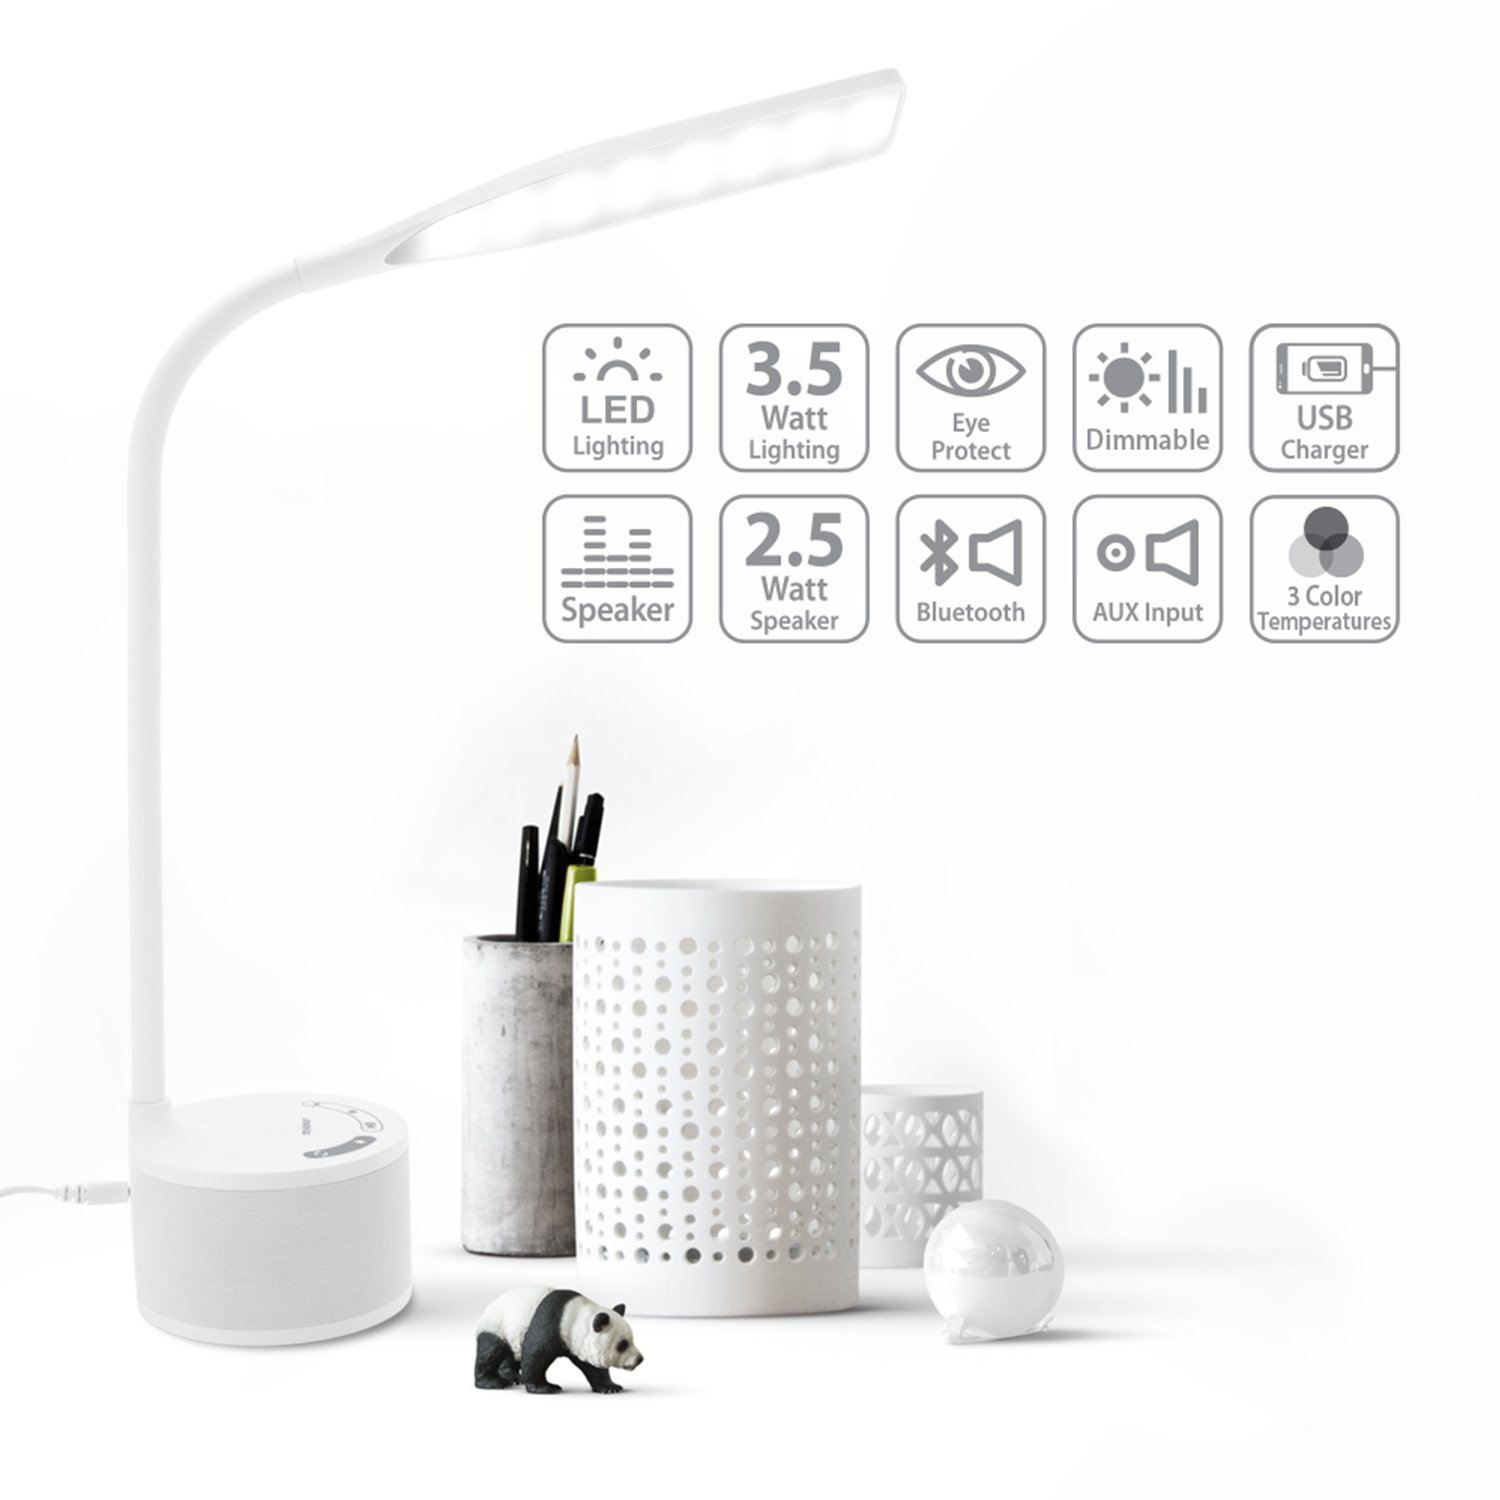 Top 10 Best LED Desk Lamps Reviewed in 2020 – Illuminate ...